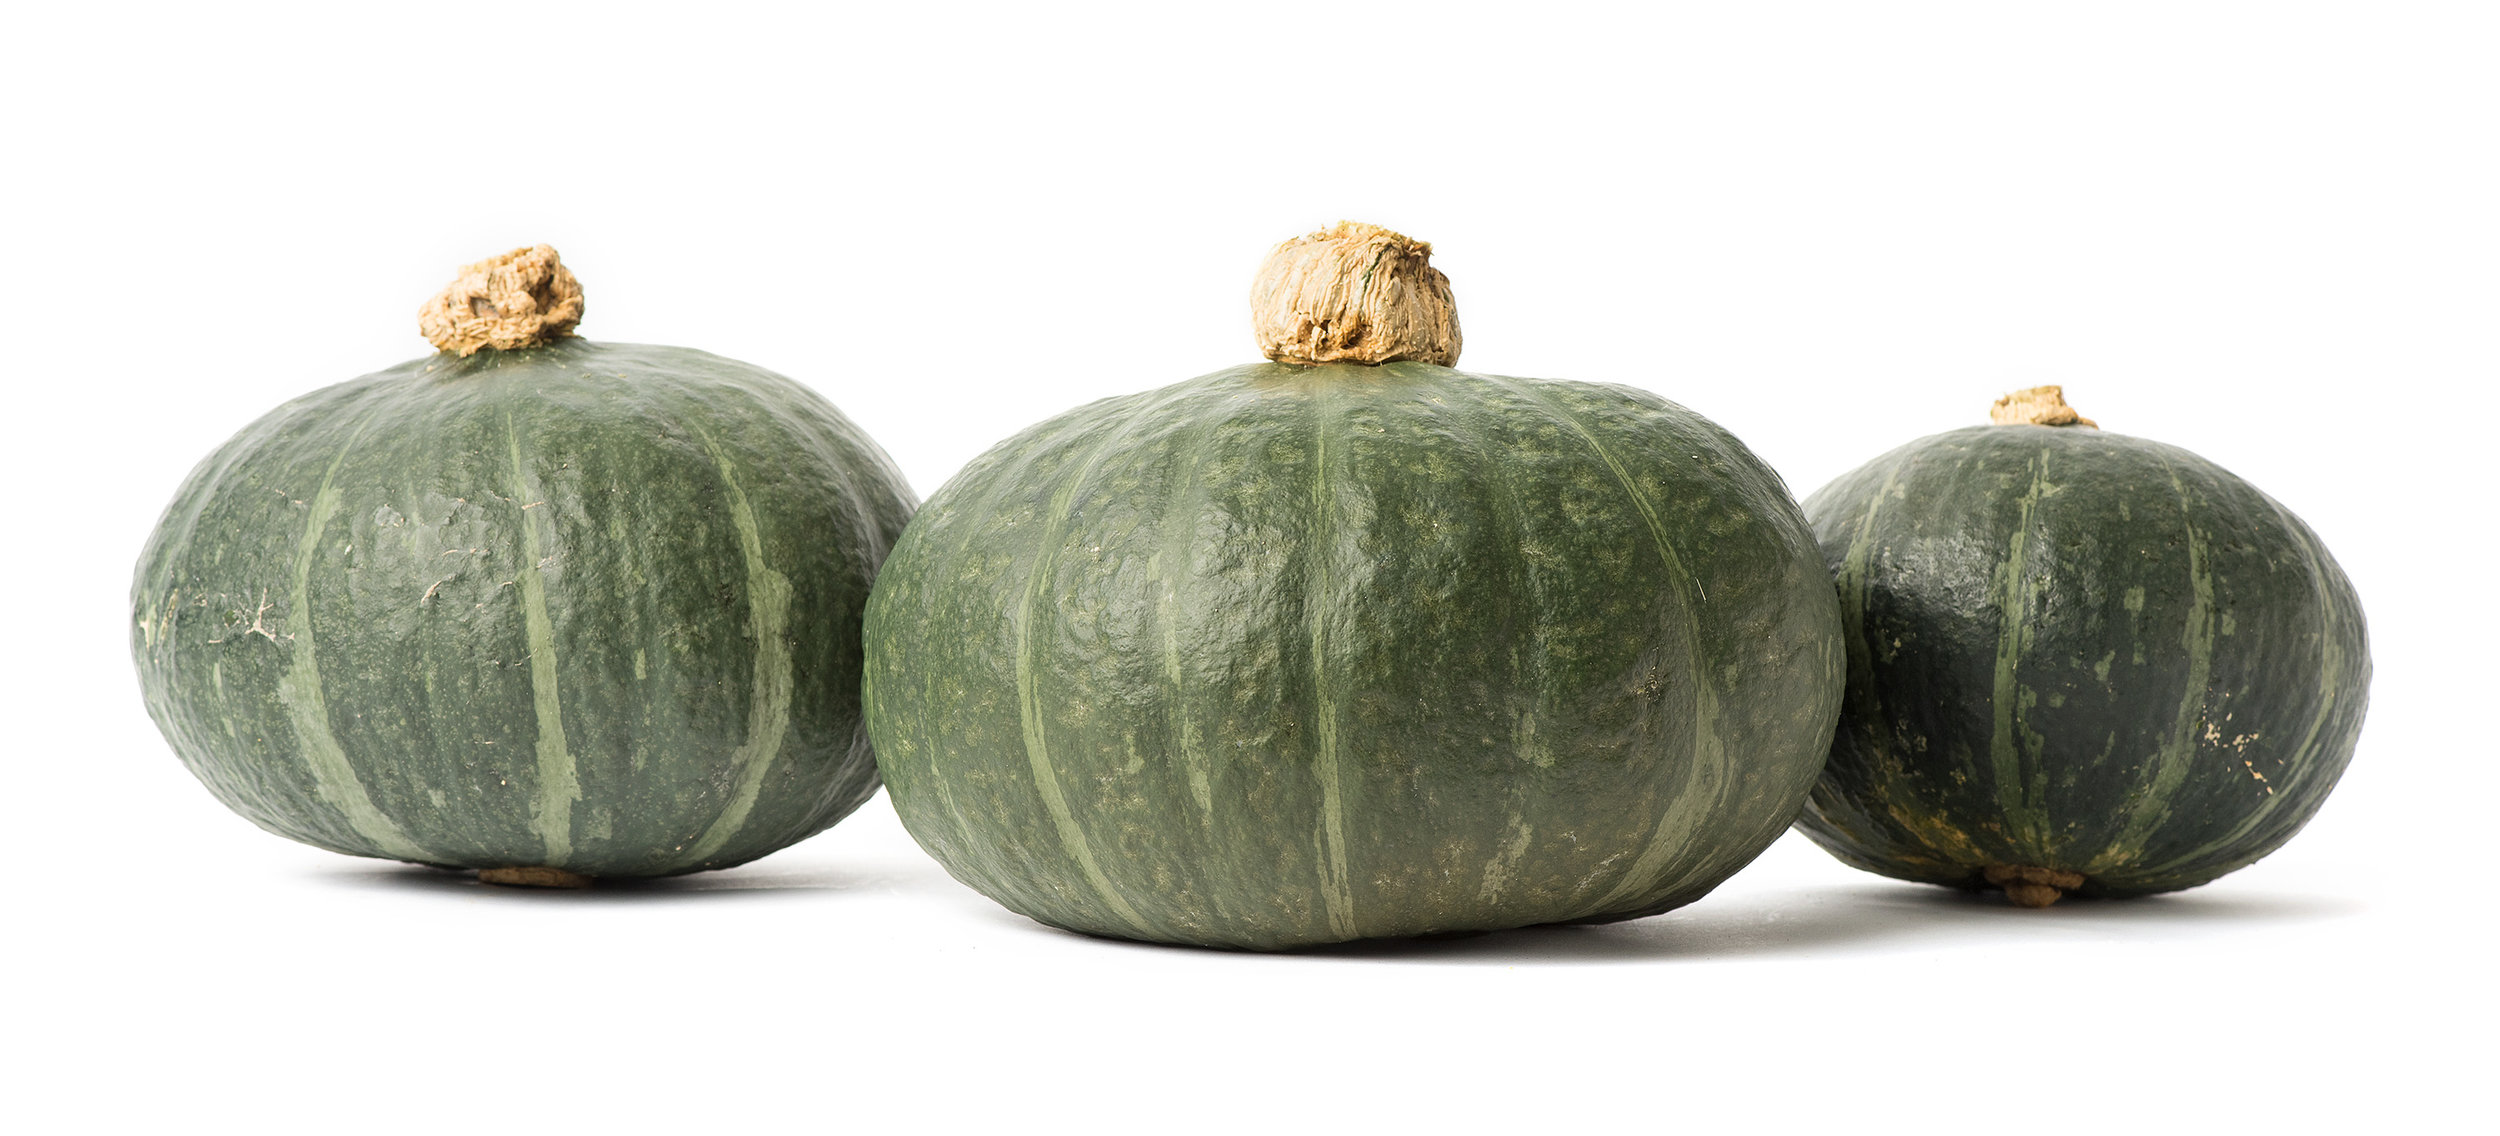 Sweet Mama, our favorite green kabocha.